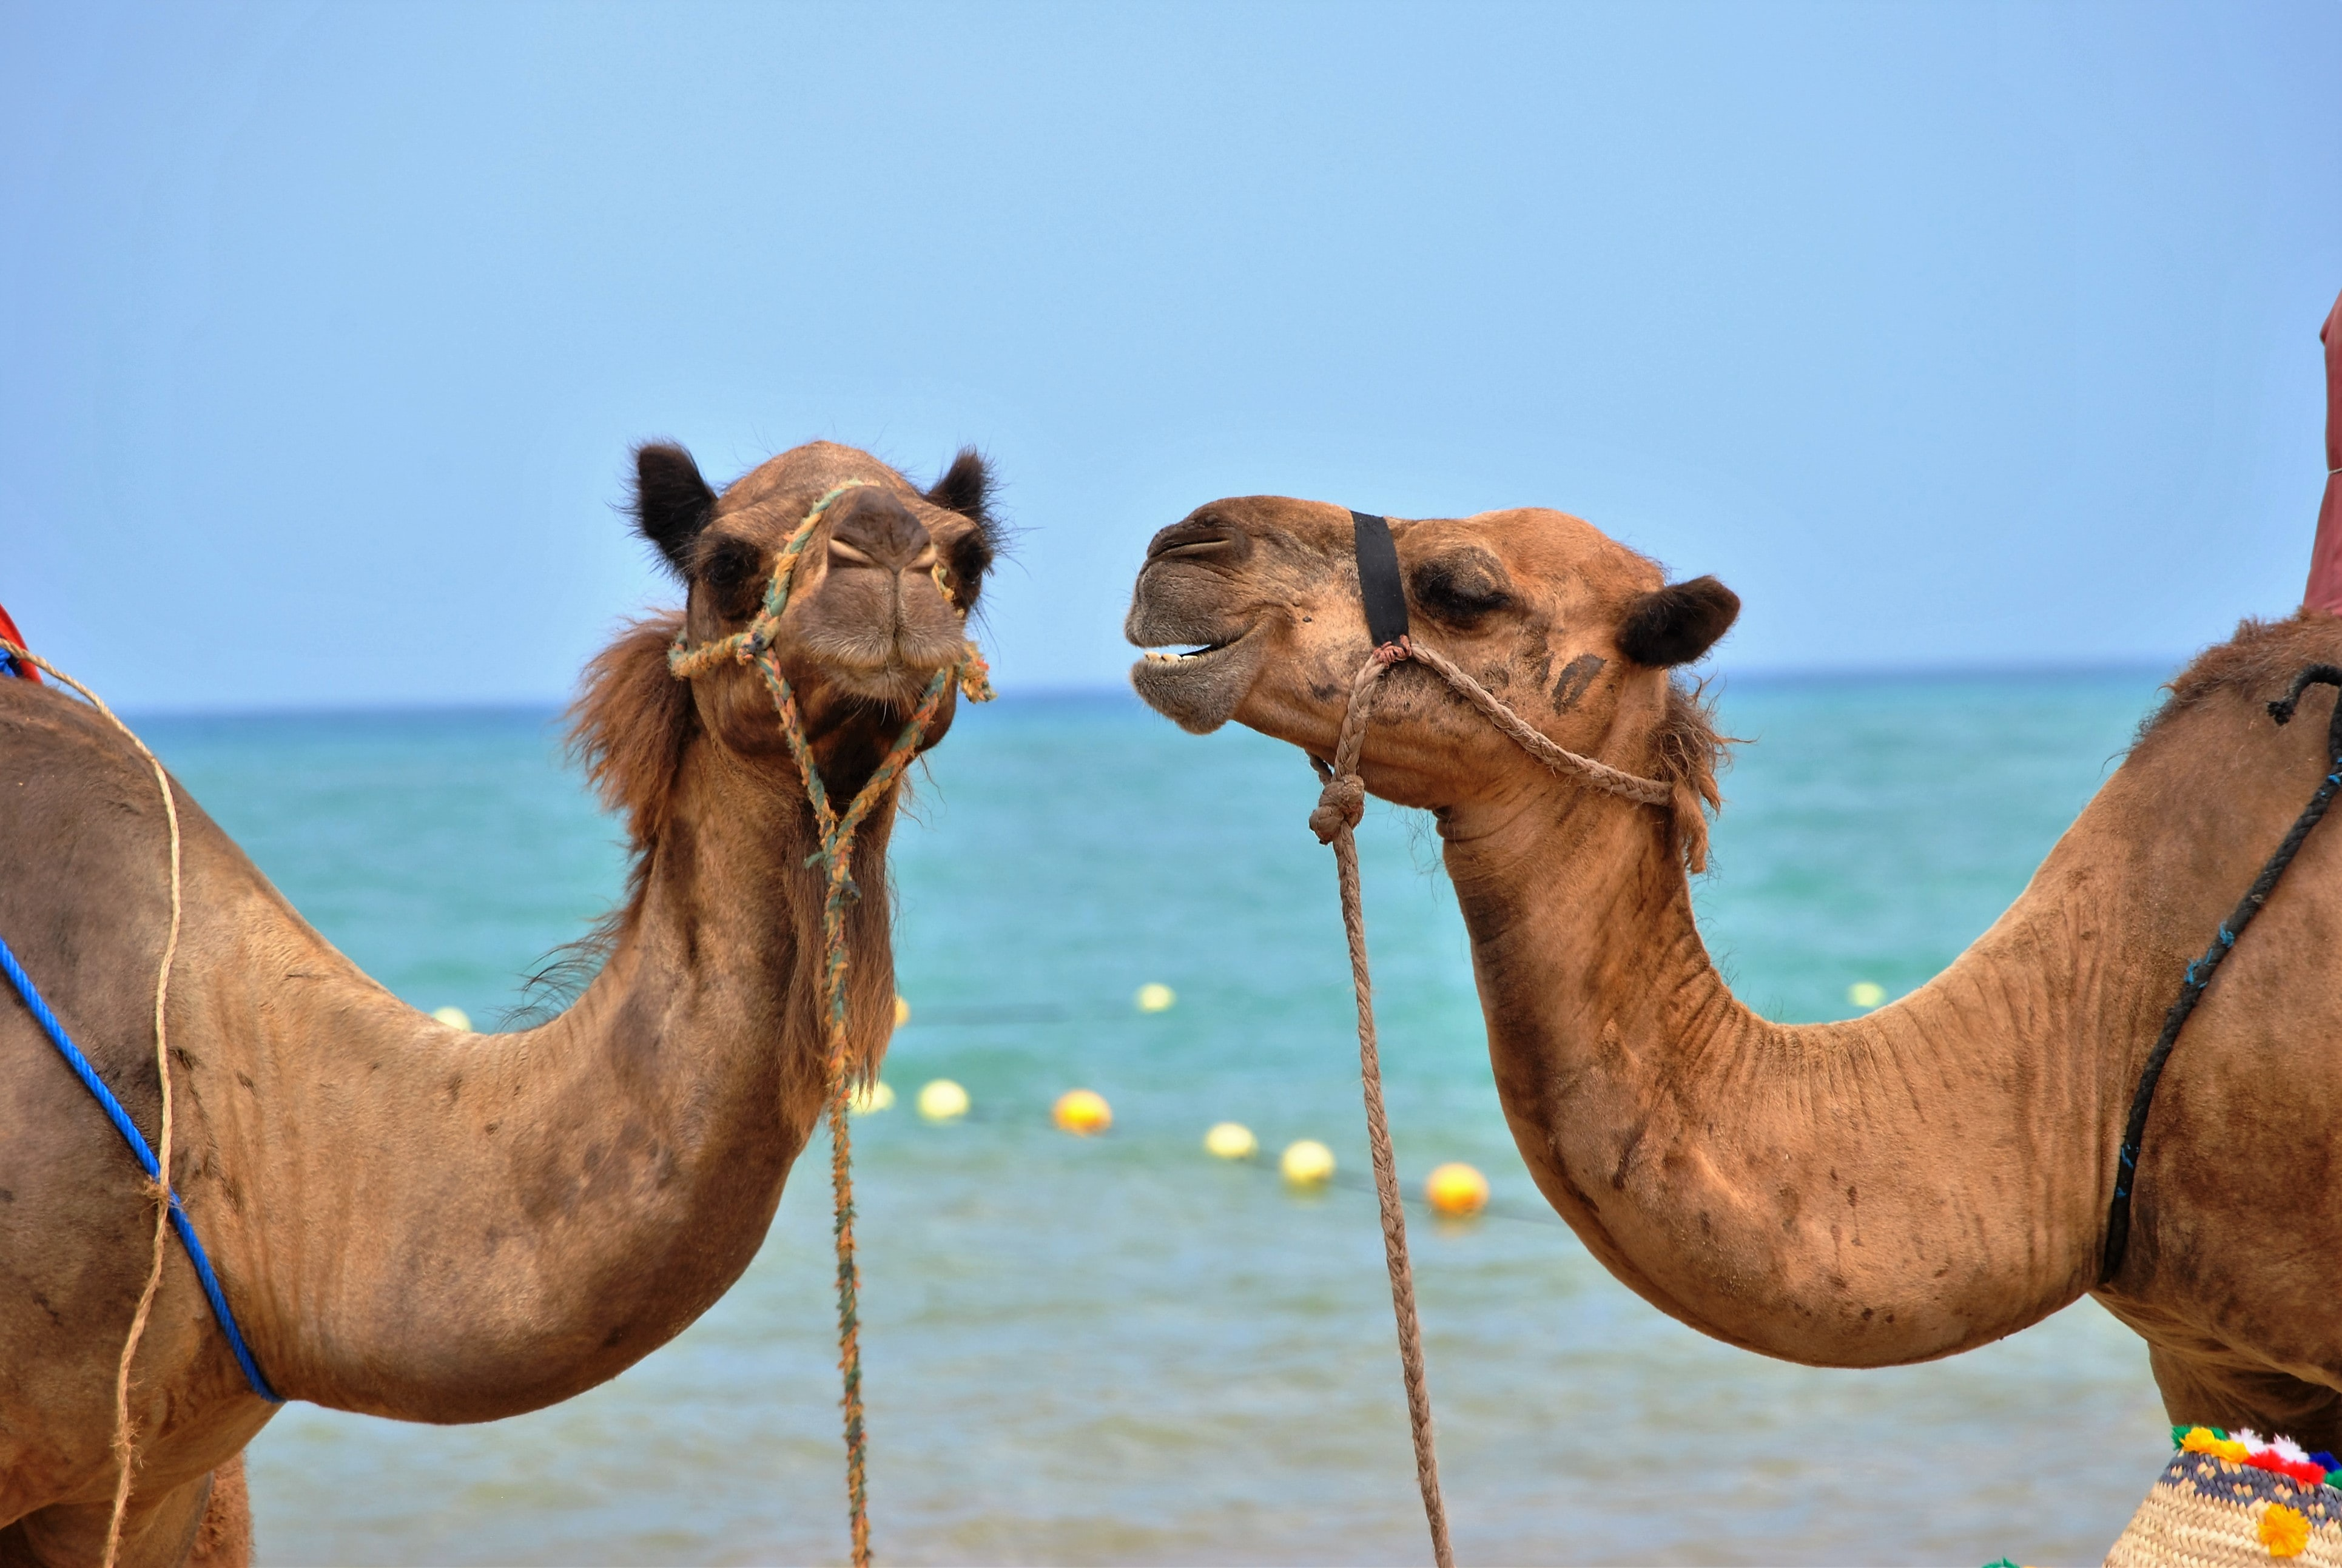 close up photo of two brown camels in front body of water